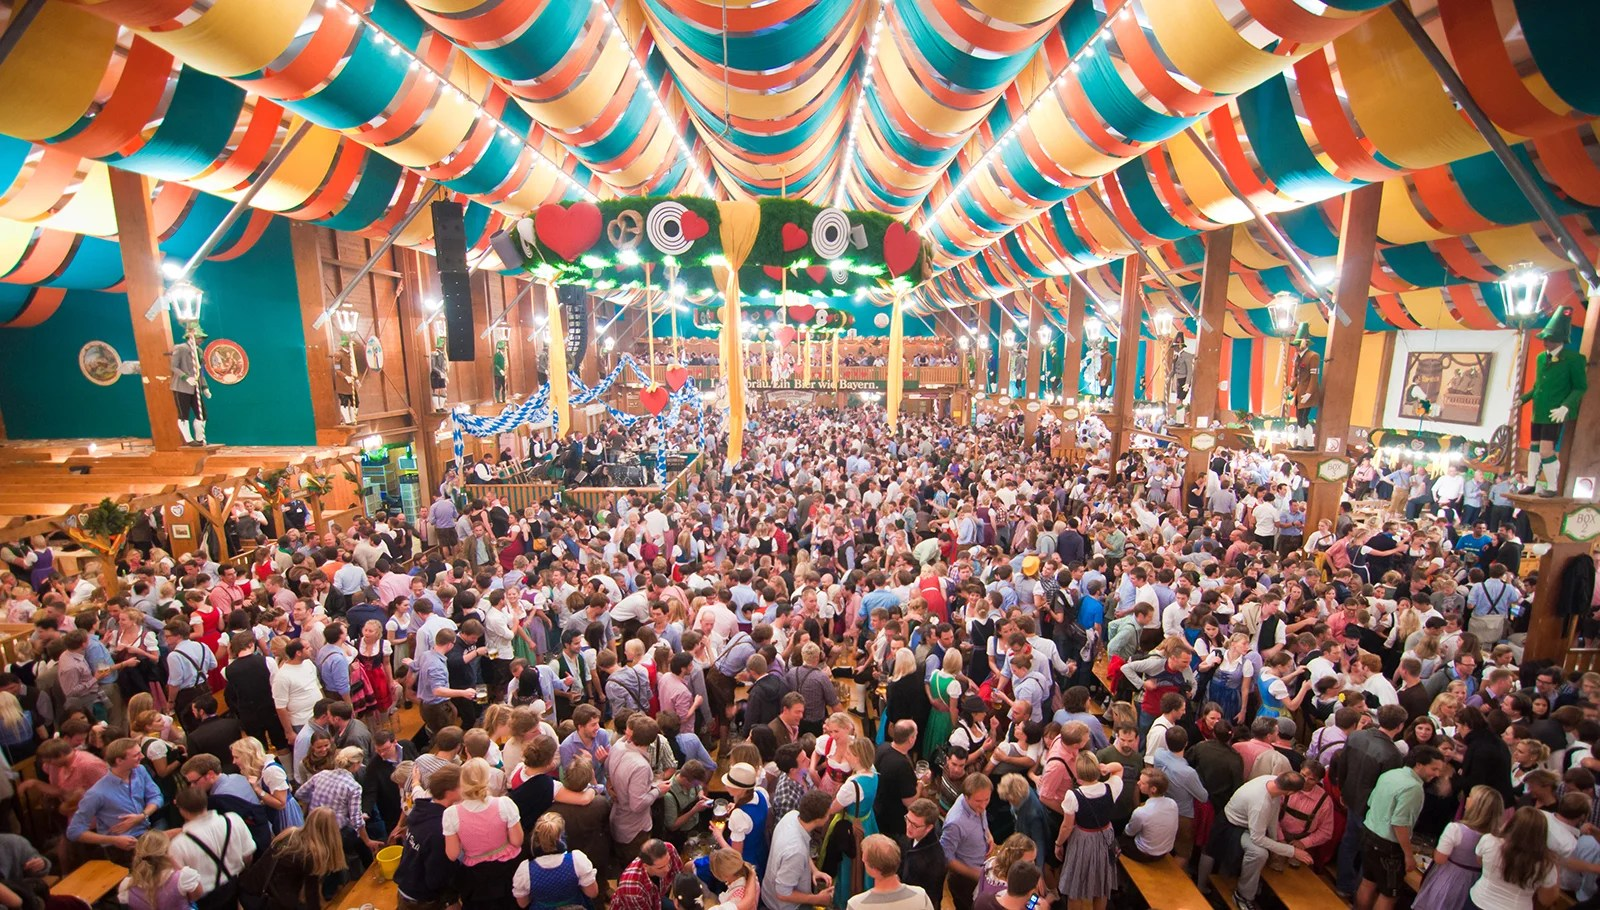 Deal Alert: Flights to Europe From 10,750 Miles in Economy — Including Munich for Oktoberfest